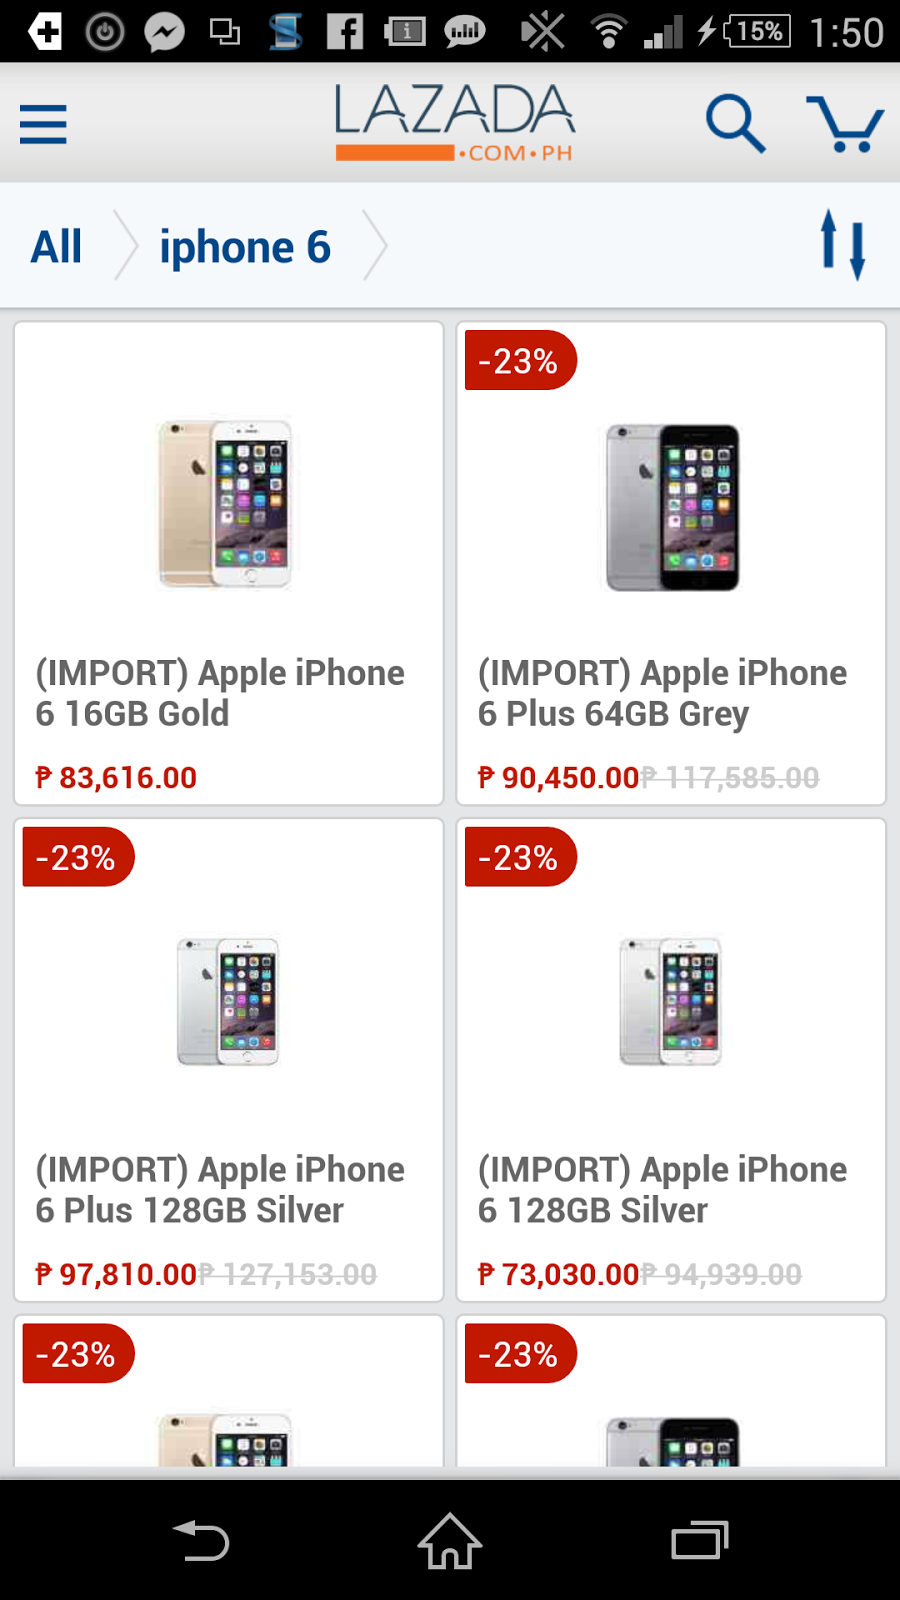 Apple iPhone 6 Lazada